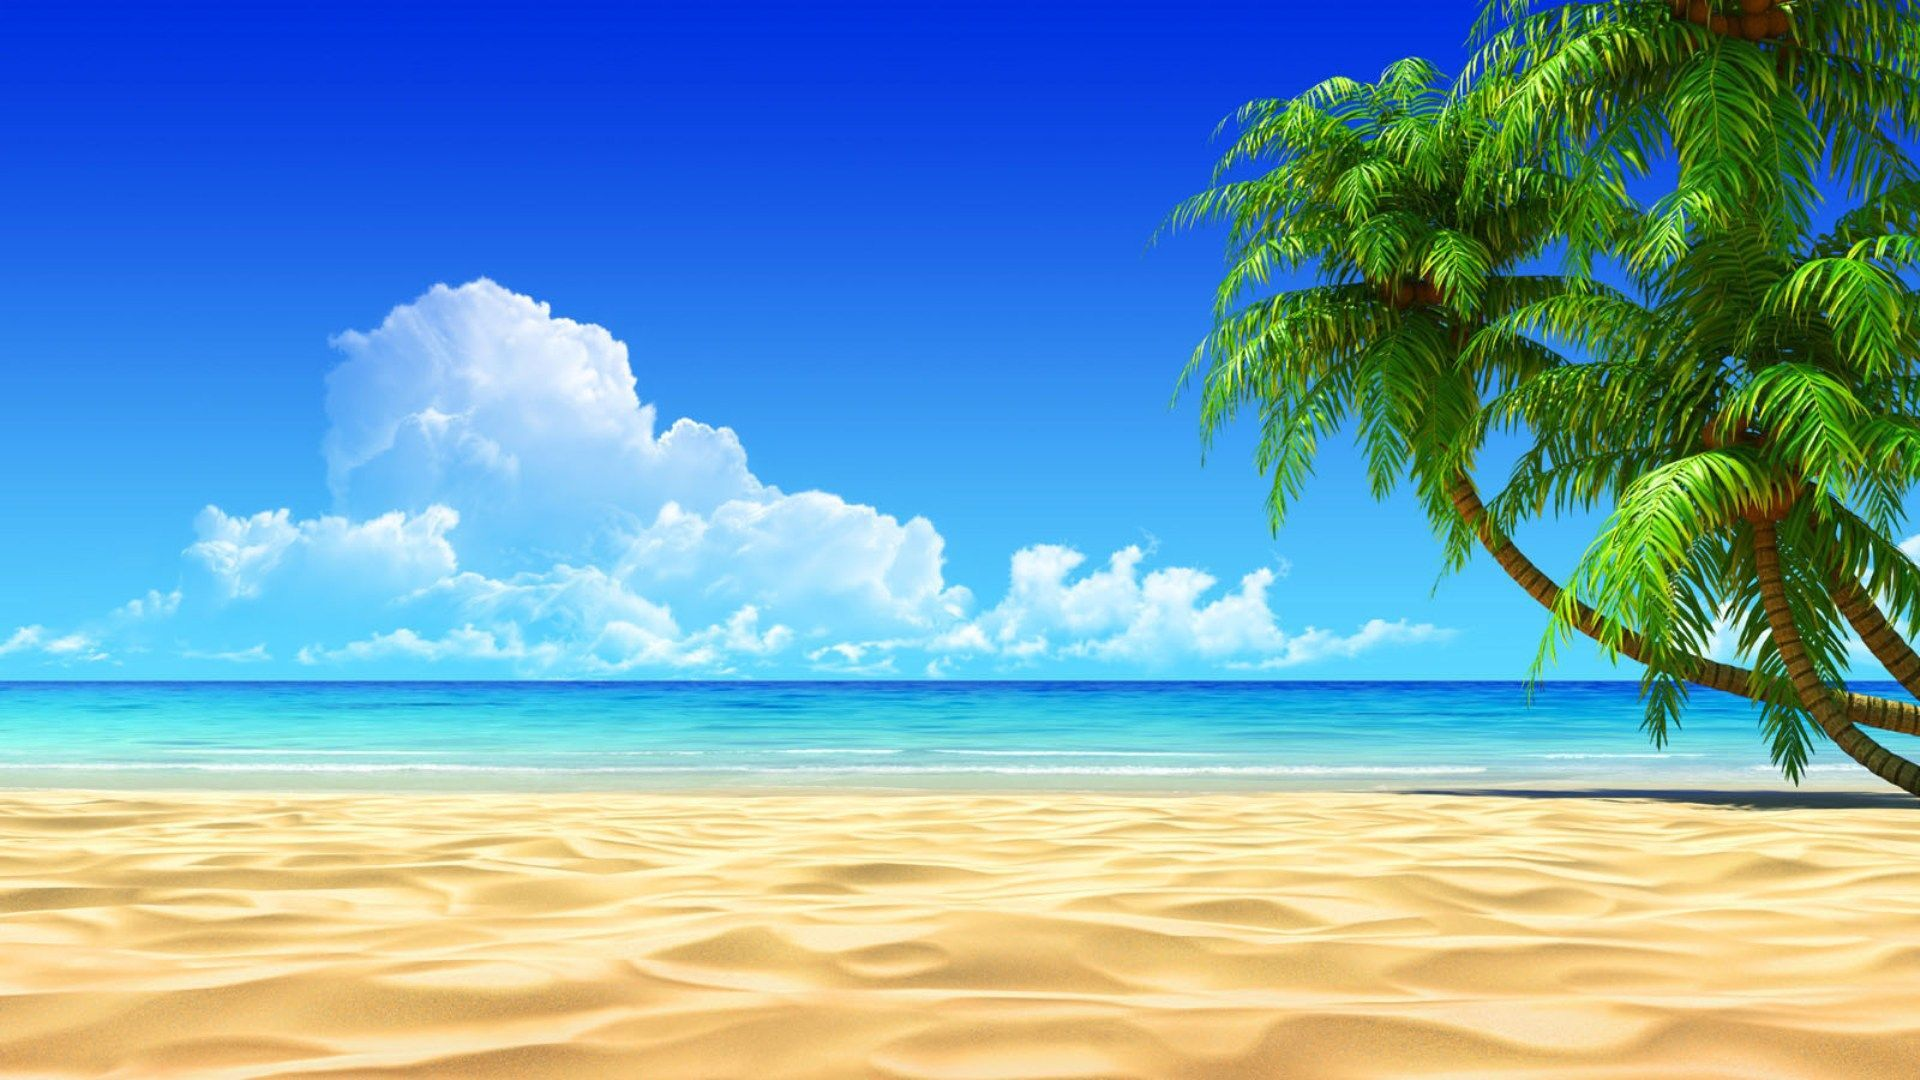 Free Beach Wallpaper Backgrounds - Wallpaper Cave